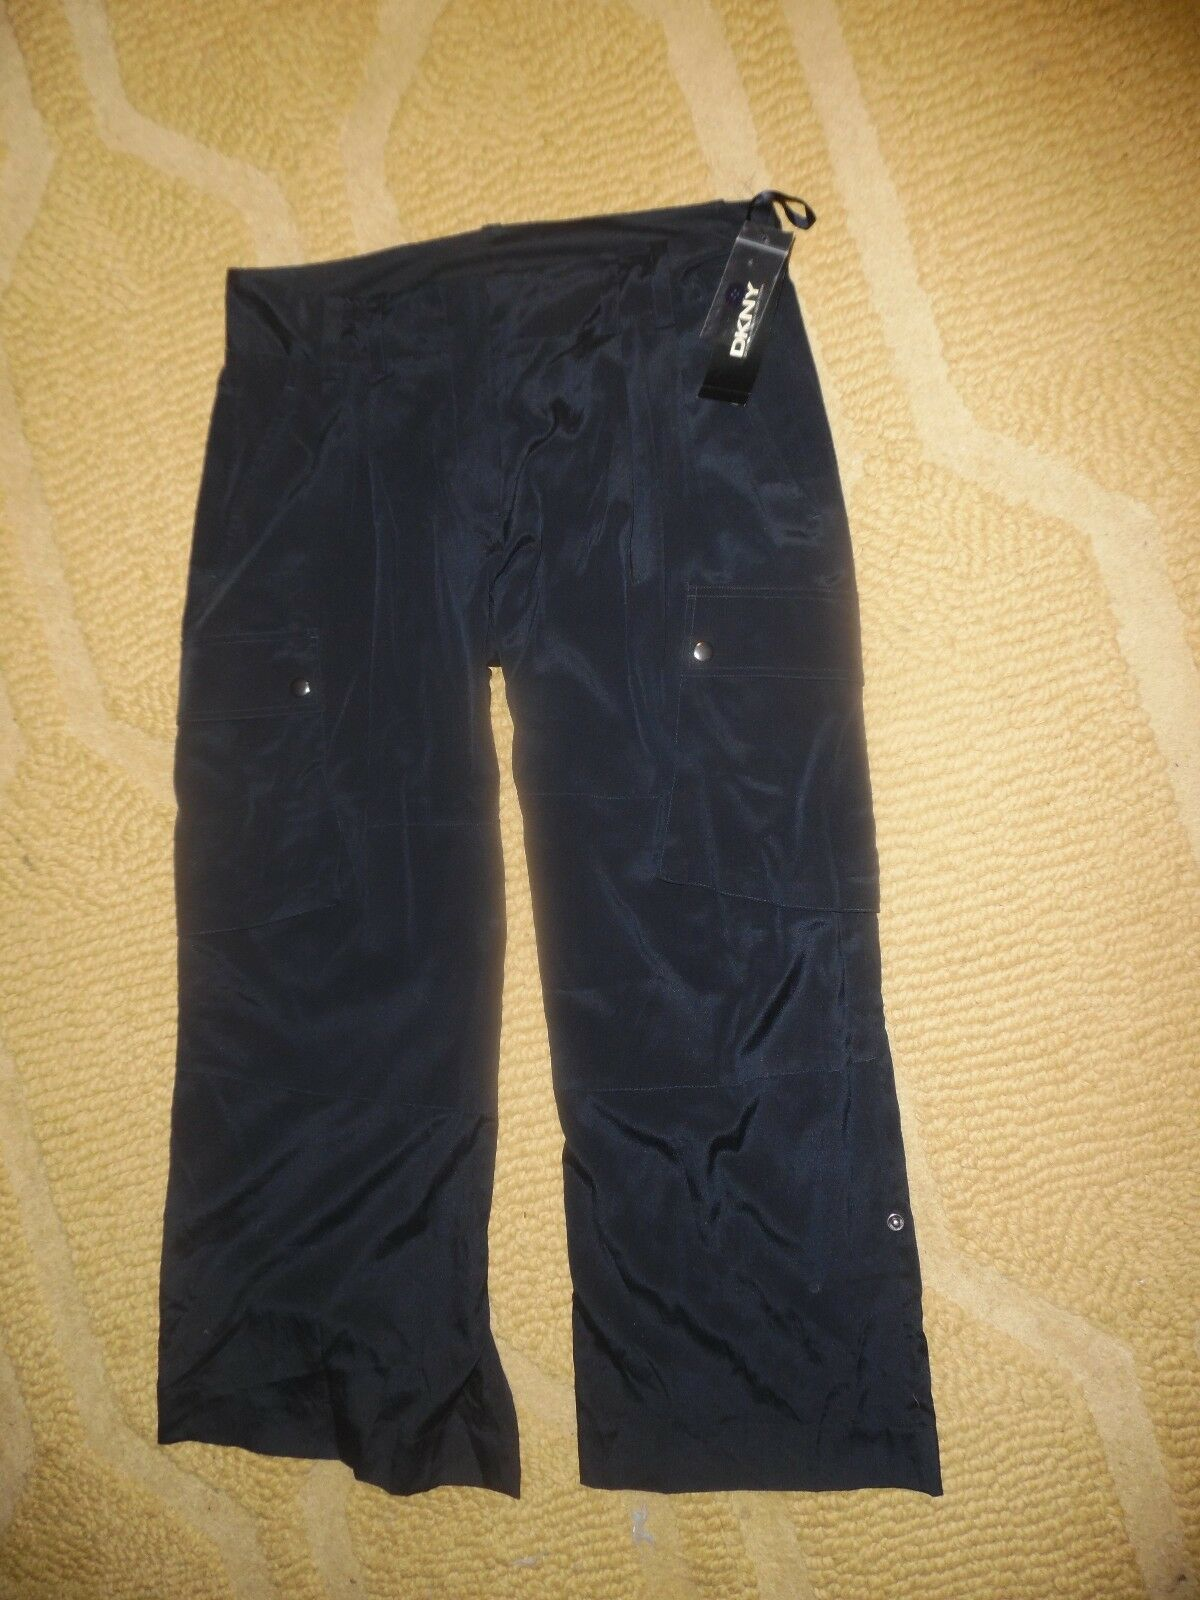 NWT  295 DKNY Silk Cropped Pants Navy Size 8